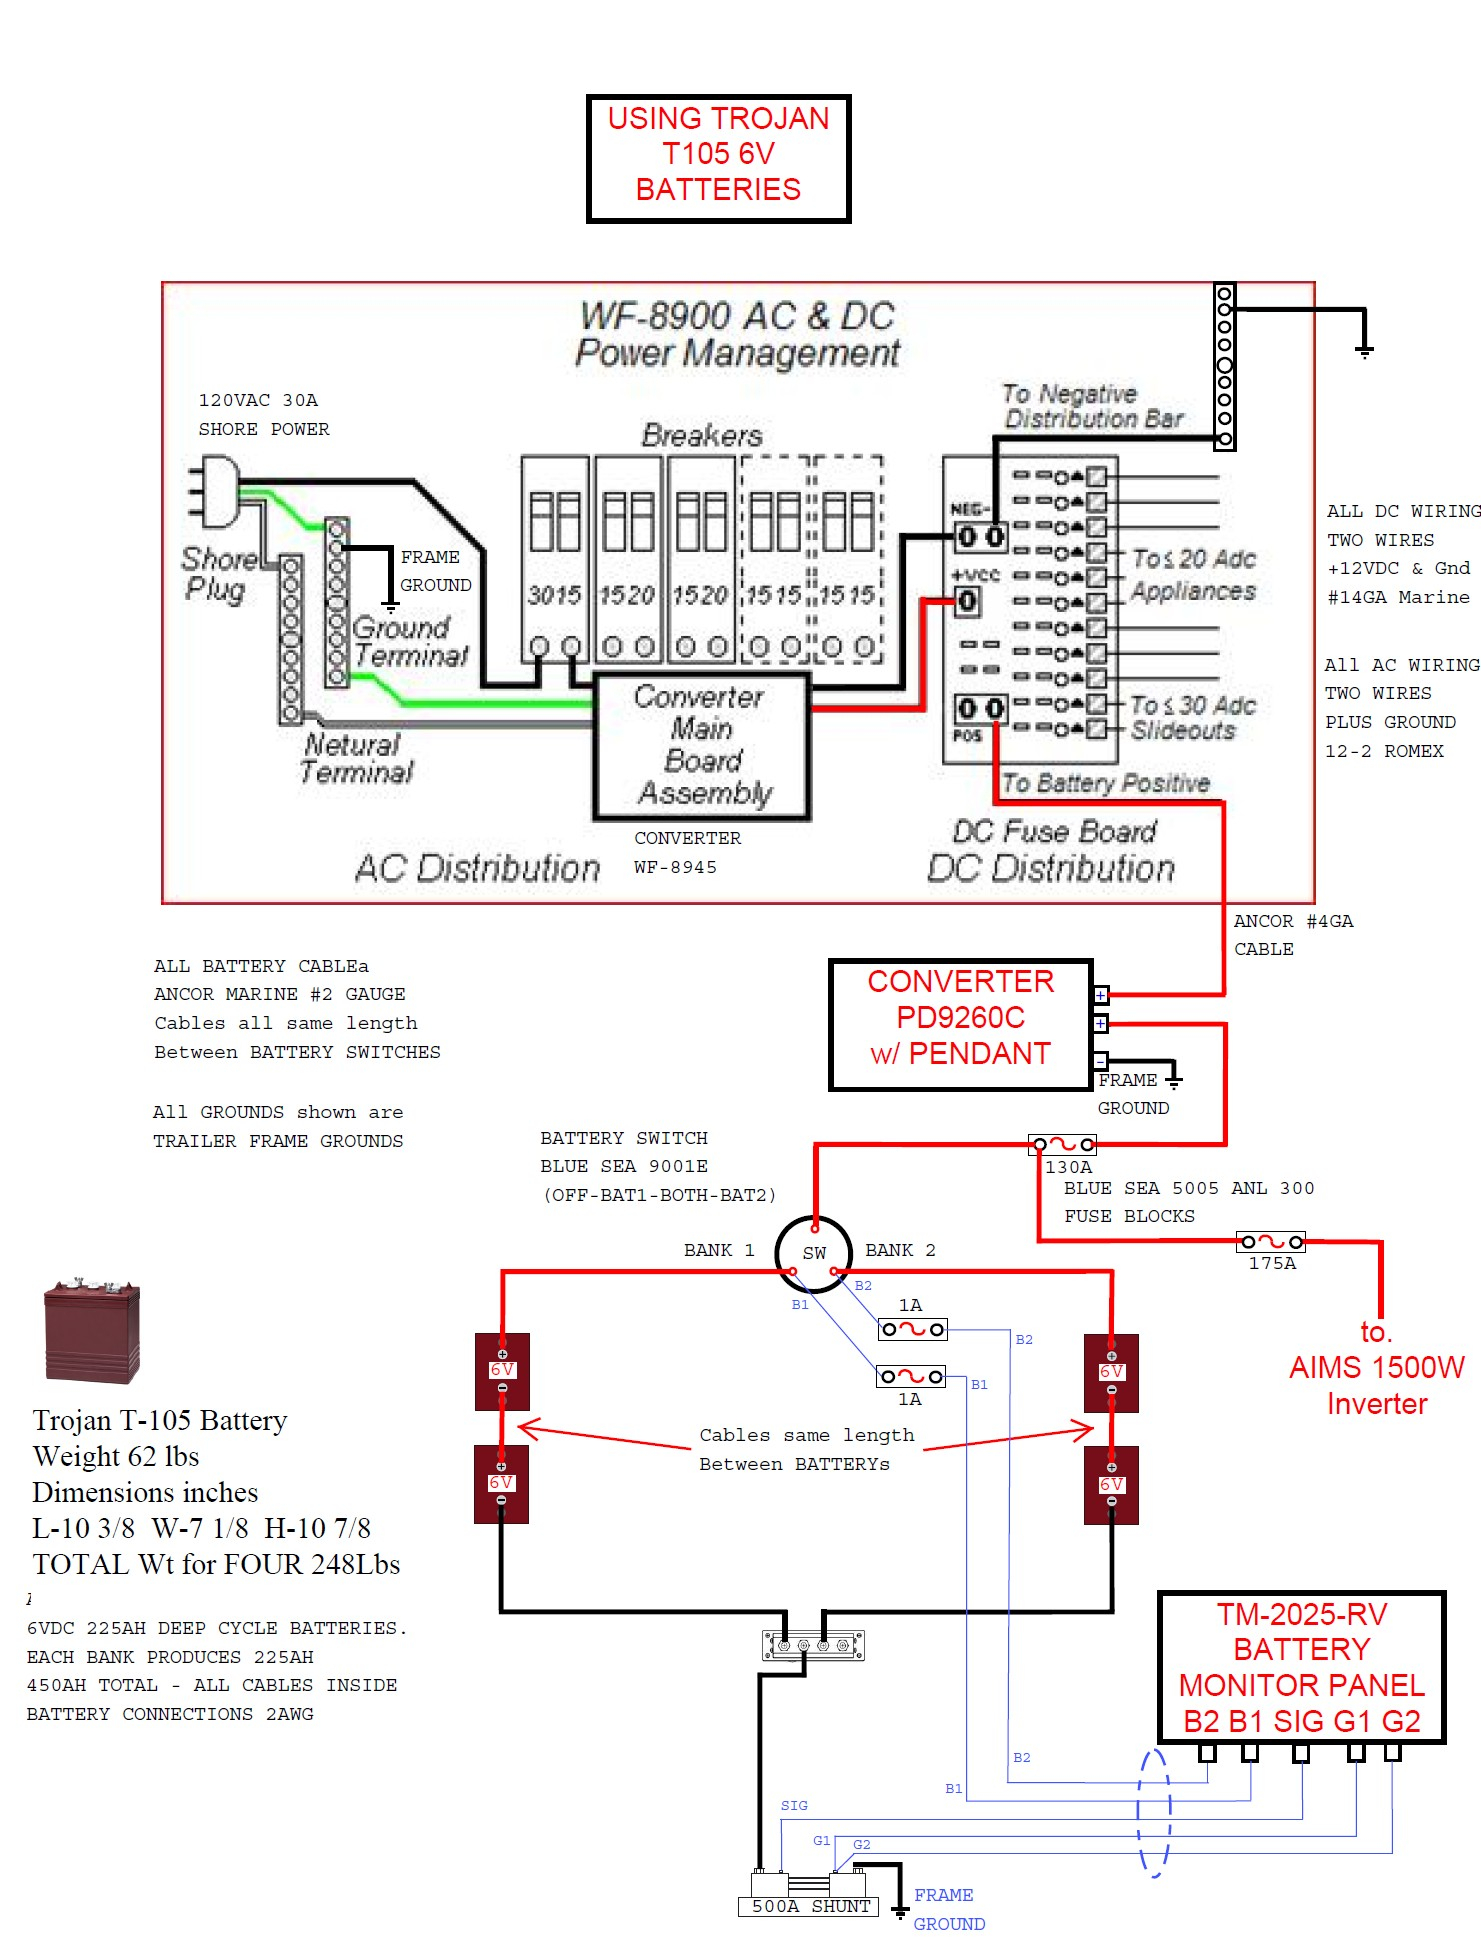 jayco eagle wiring diagram Collection-Wiring Diagram for Jayco Caravans Fresh Jayco Eagle Wiring Diagram 4-k